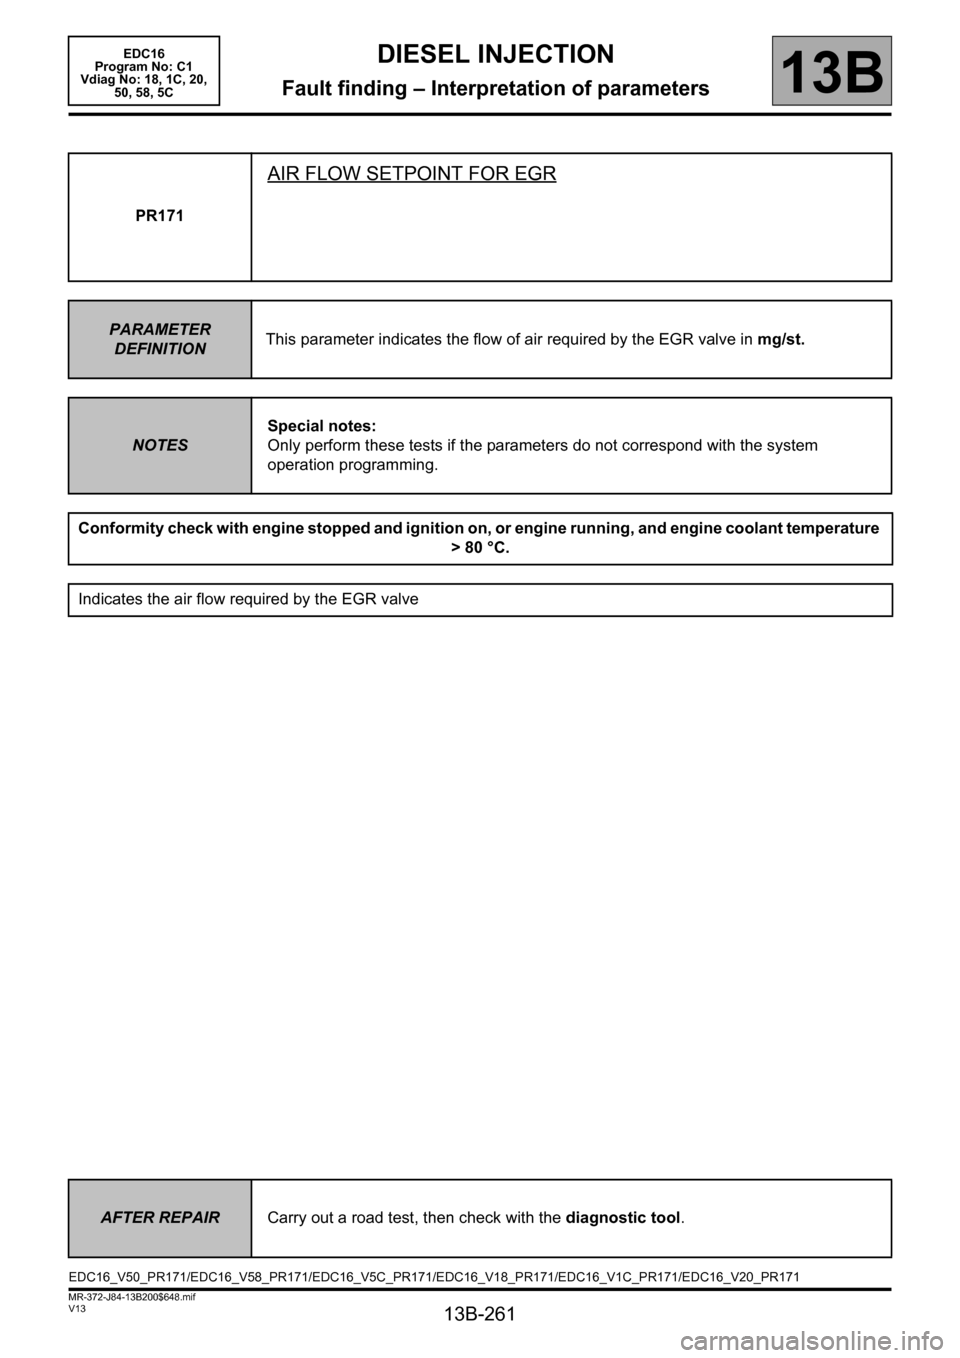 RENAULT SCENIC 2011 J95 / 3.G Engine And Peripherals EDC16 Workshop Manual, Page 261